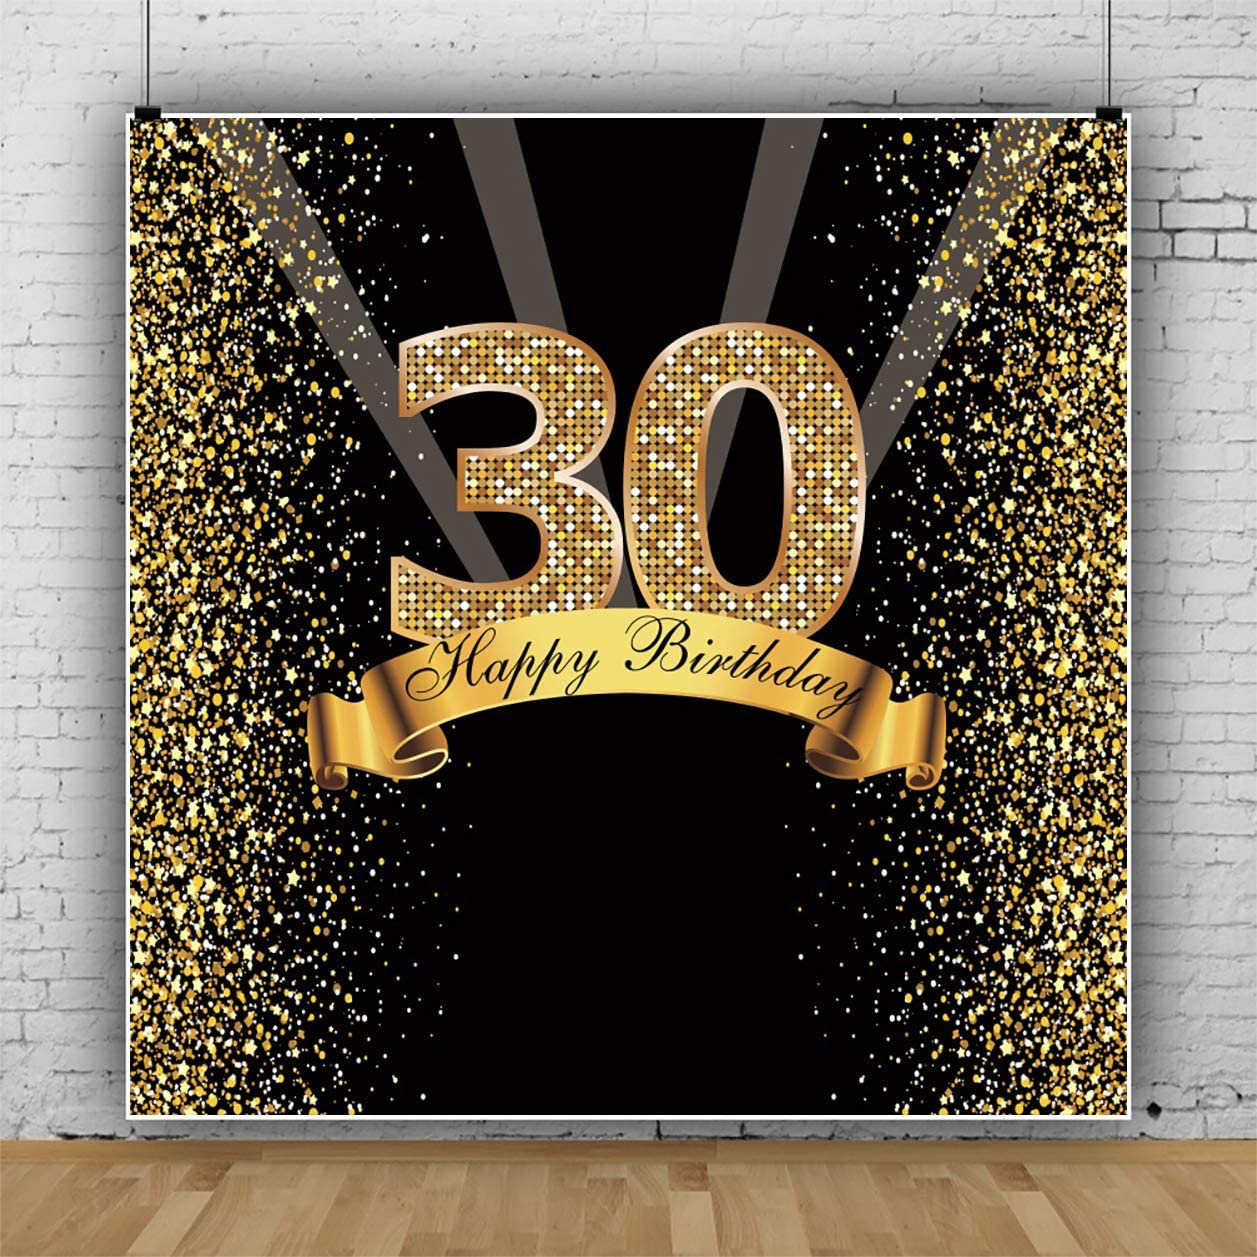 Yeele Gold 30th Birthday Backdrop for Woman Man 5x5ft Glitter Shiny Golden Sequins Sparkling Photography Backgrounds Happy 30 Birthday Banners for Photoshoot Props Lady Gentlemen Portrait Wallpaper